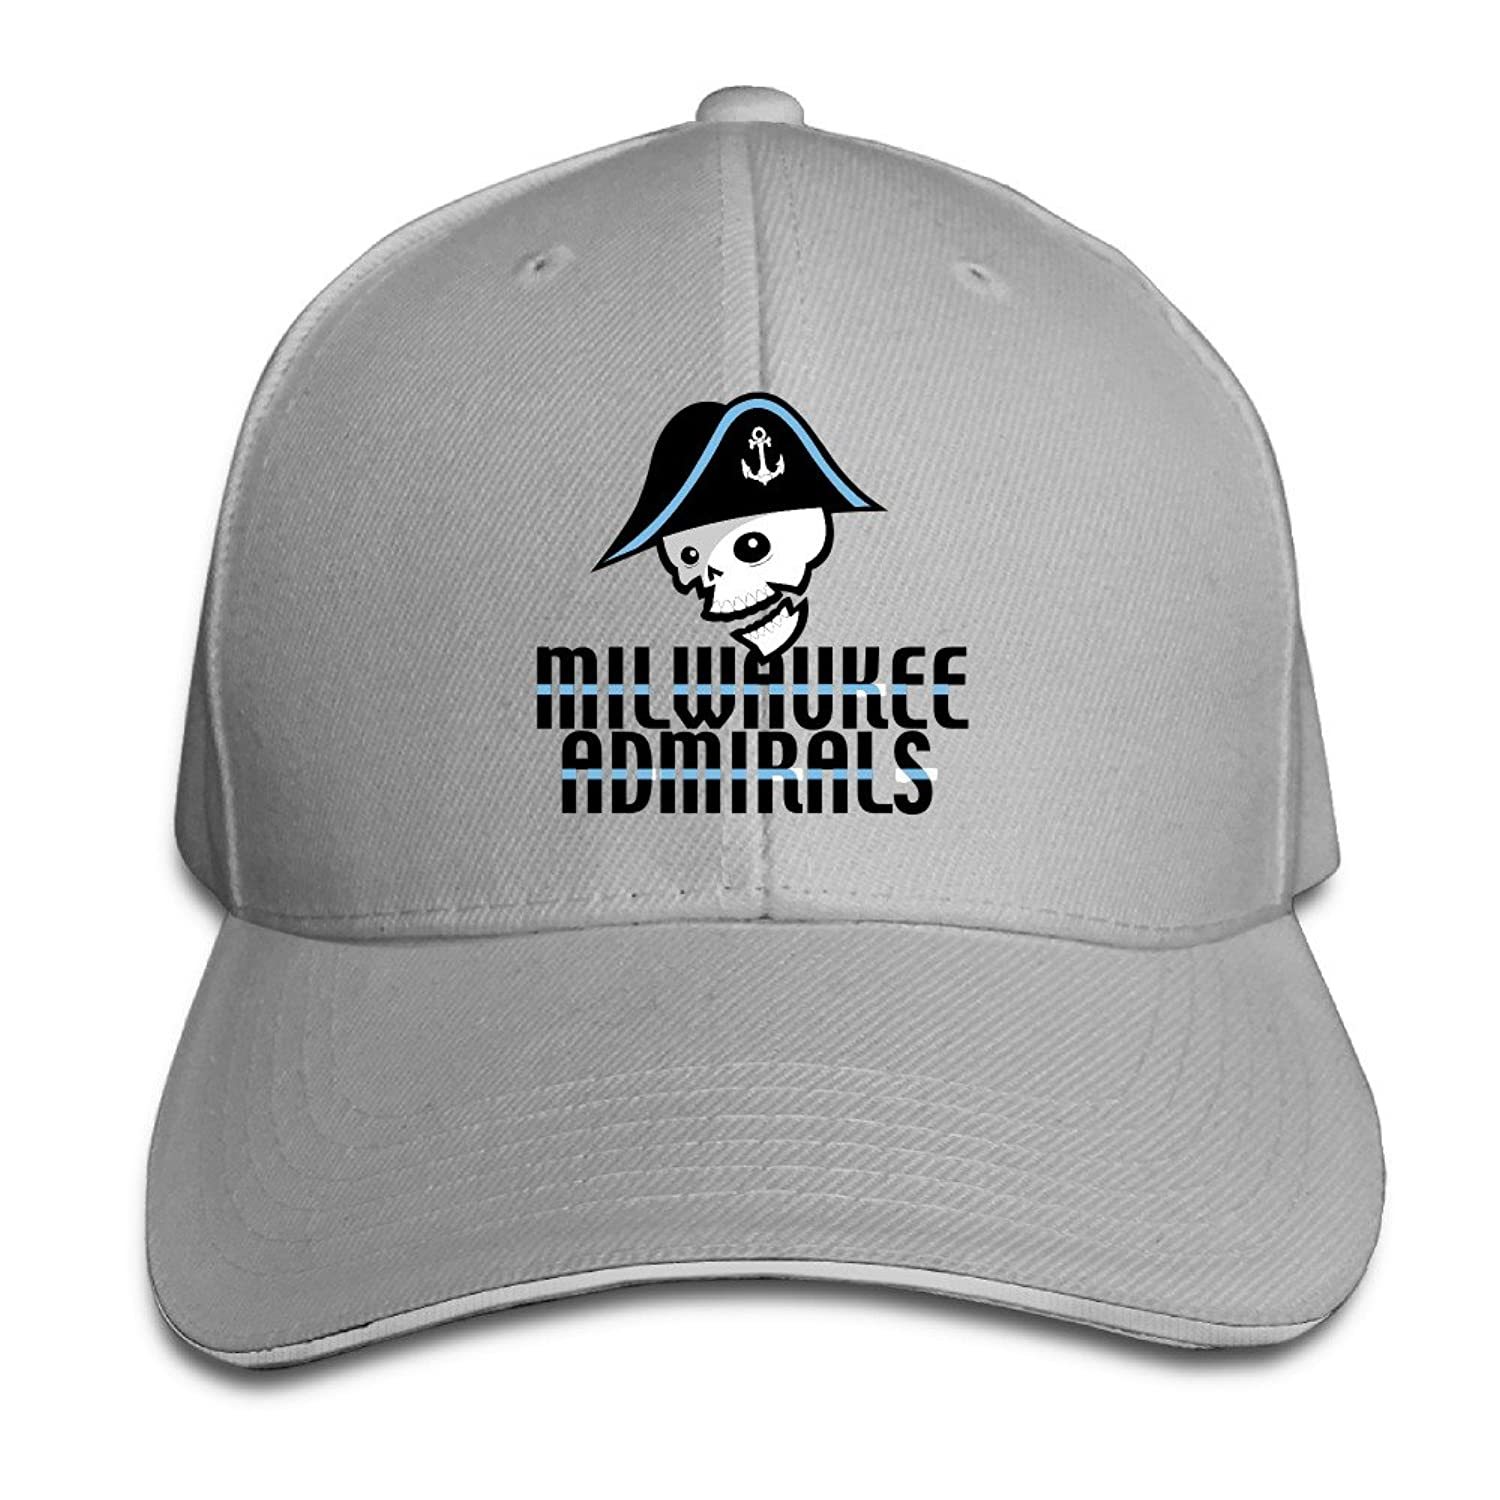 Iruds Admirals Hockey Team Logo Outdoor Sandwich Peaked Cap&Hat For Unisex